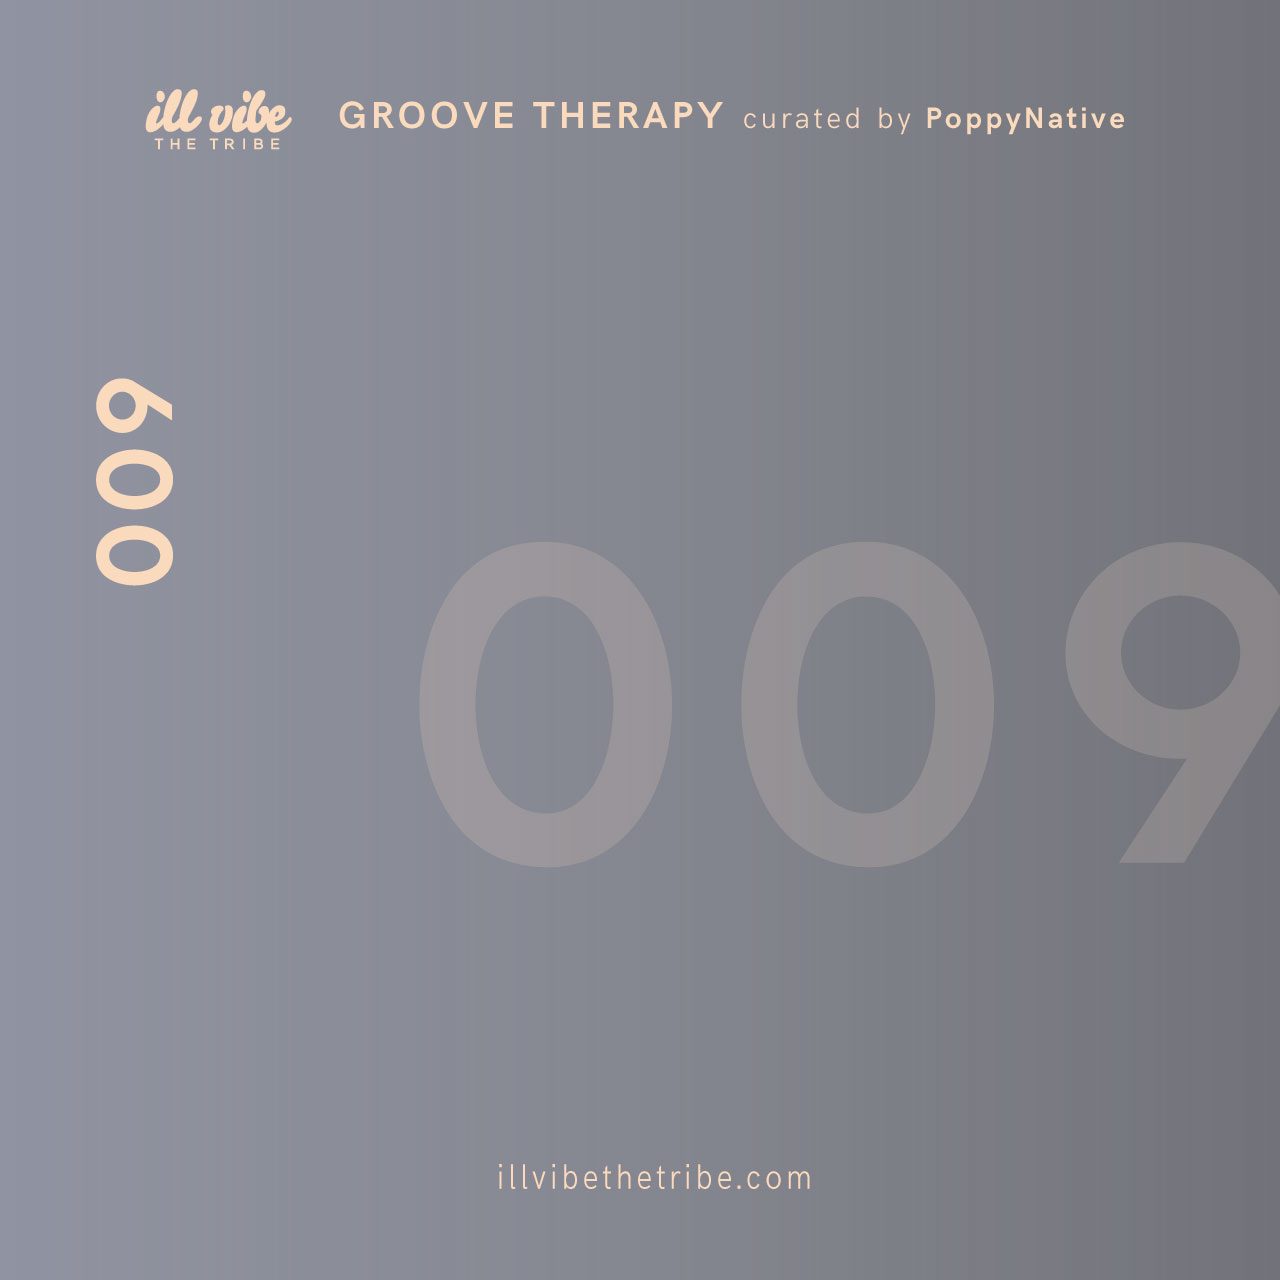 GrooveTherapy009.jpg